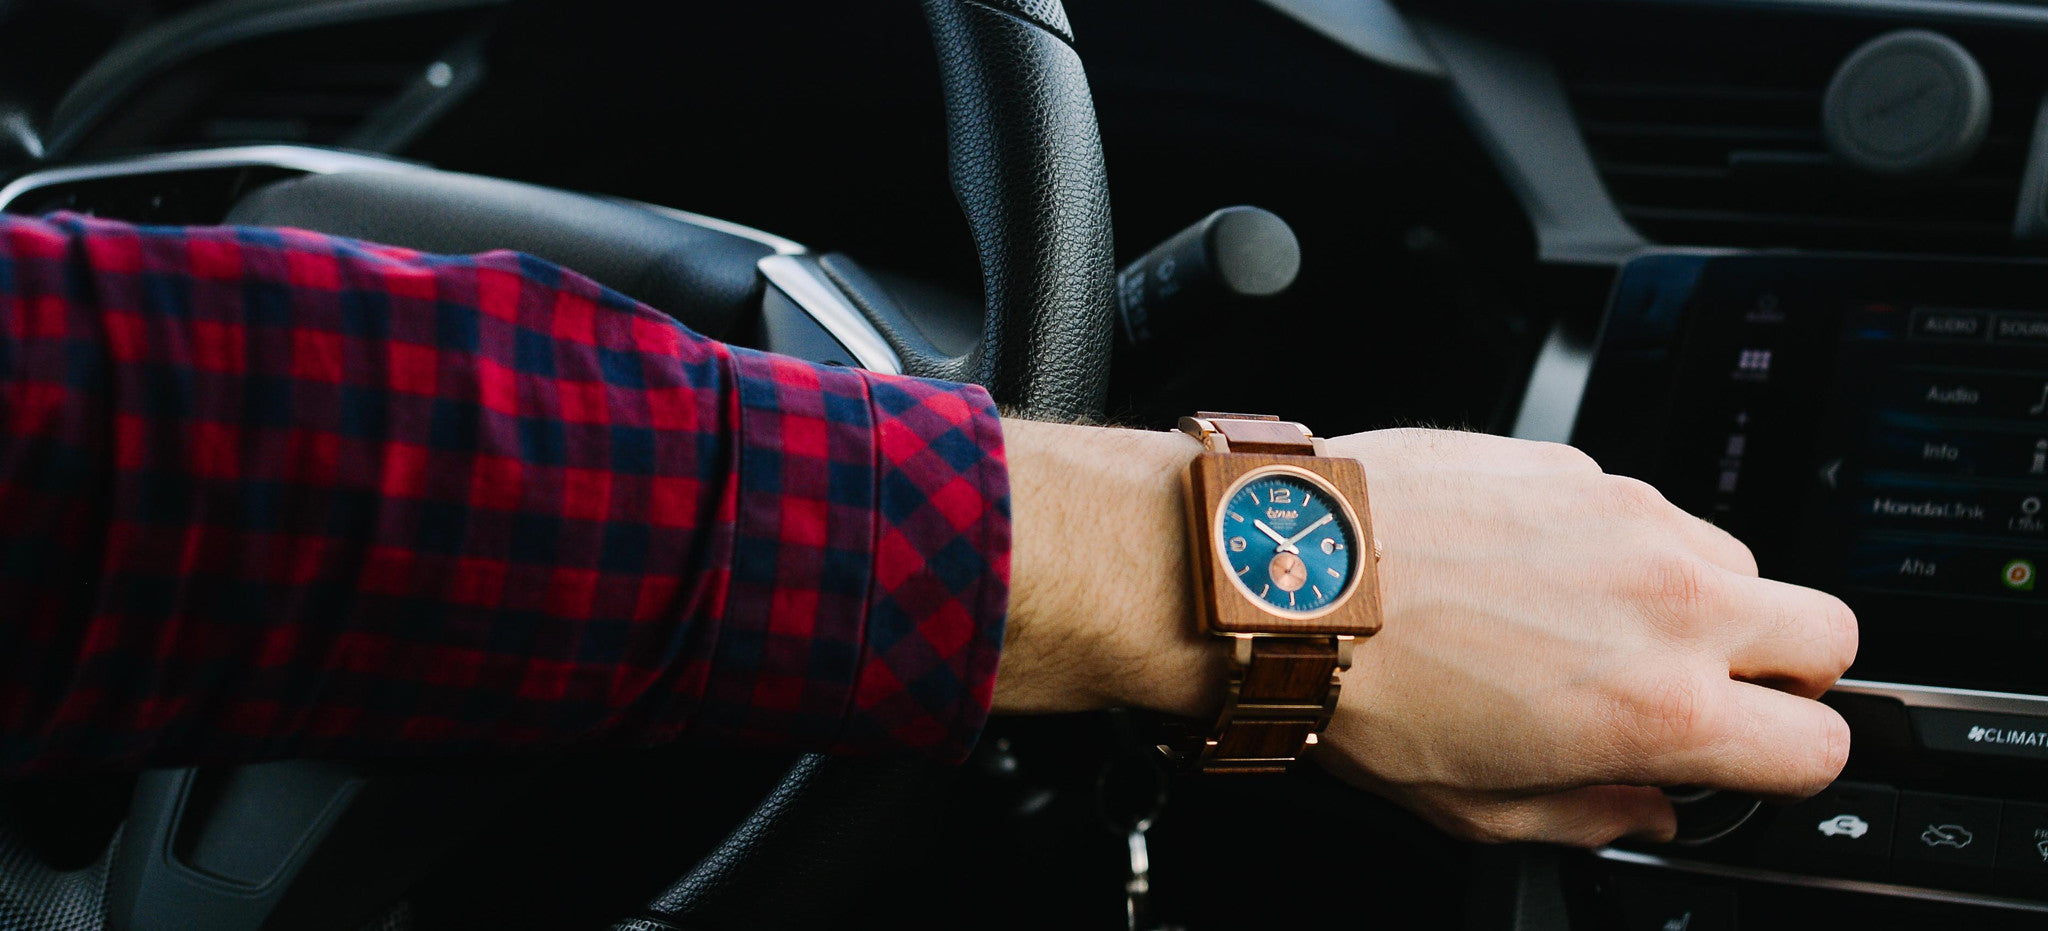 Tense Watches - Graduation Gifts